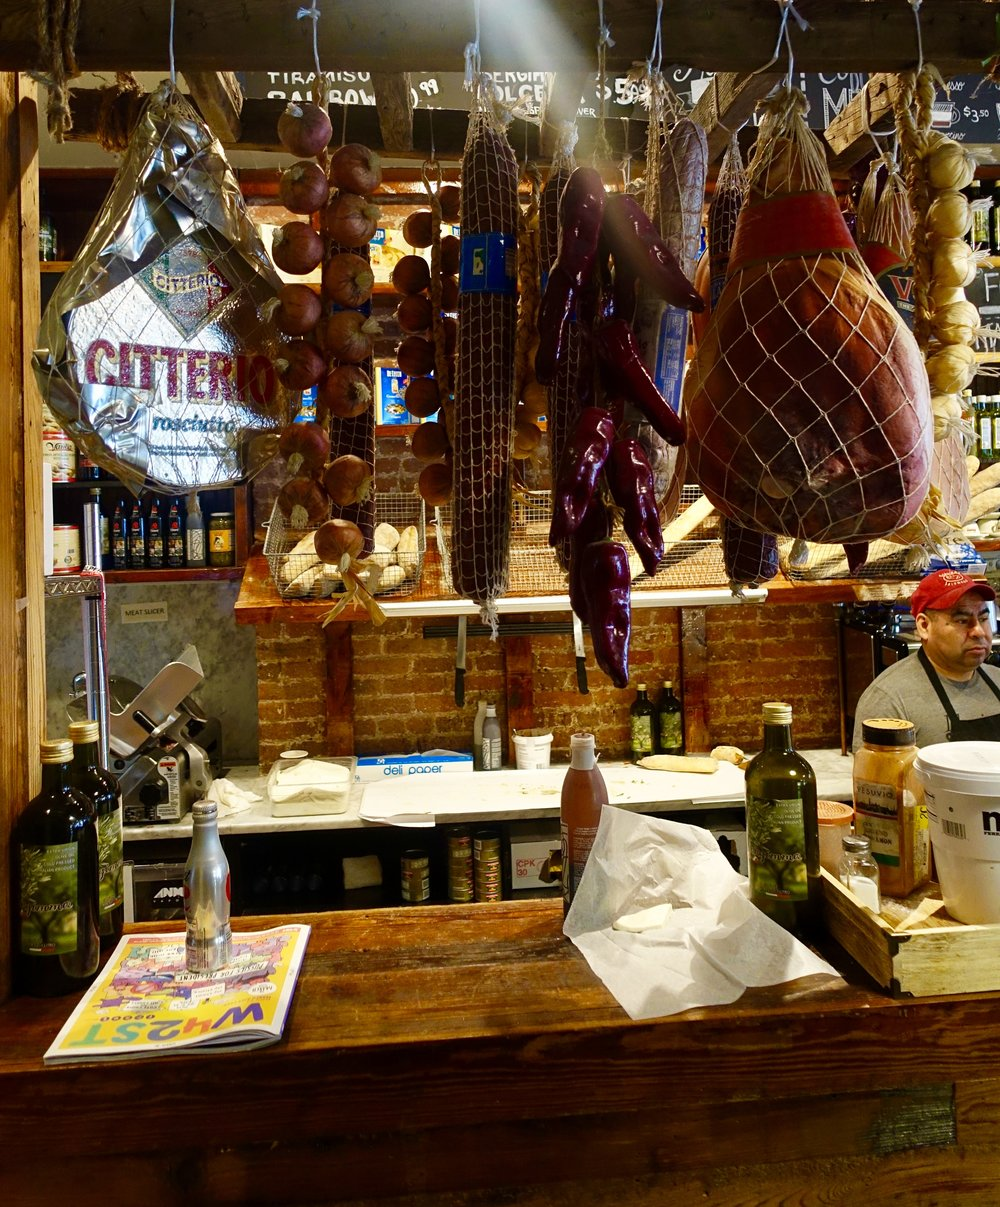 sergimmo salumeria - best italian food new york - where to eat in new york - best restaurants in new york.jpg